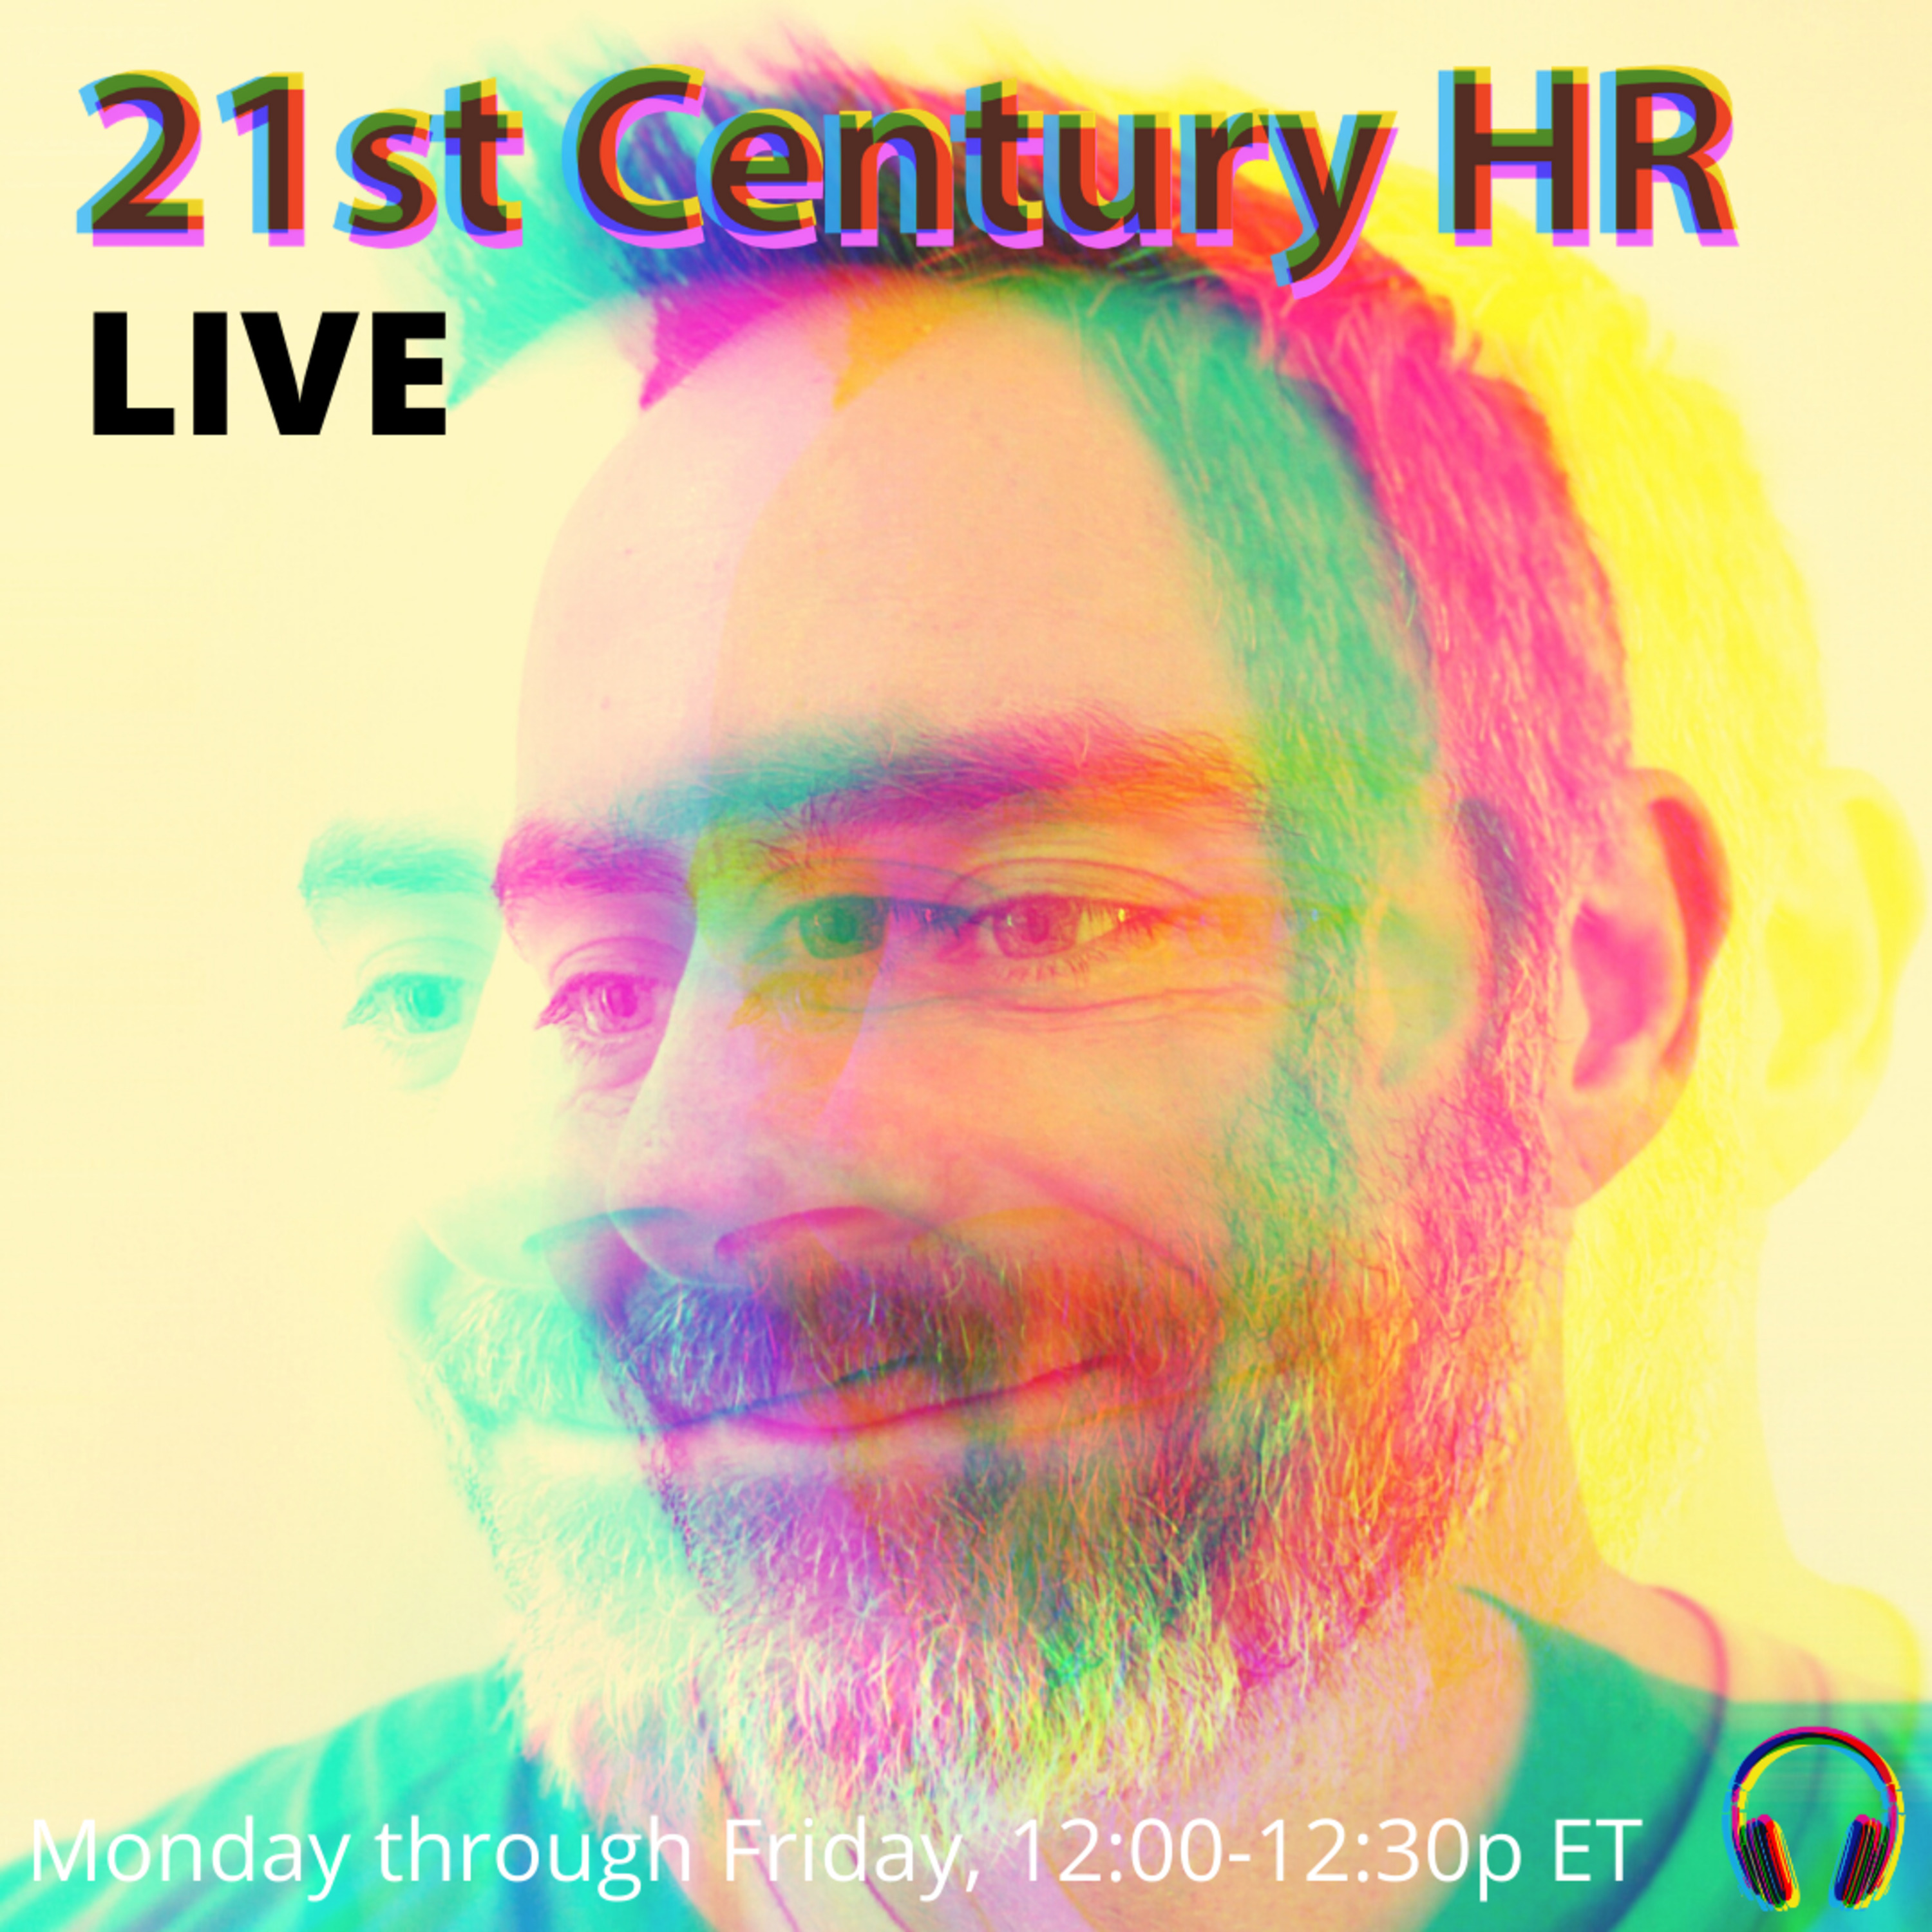 Ep55 Introducing 21st Century HR, Live